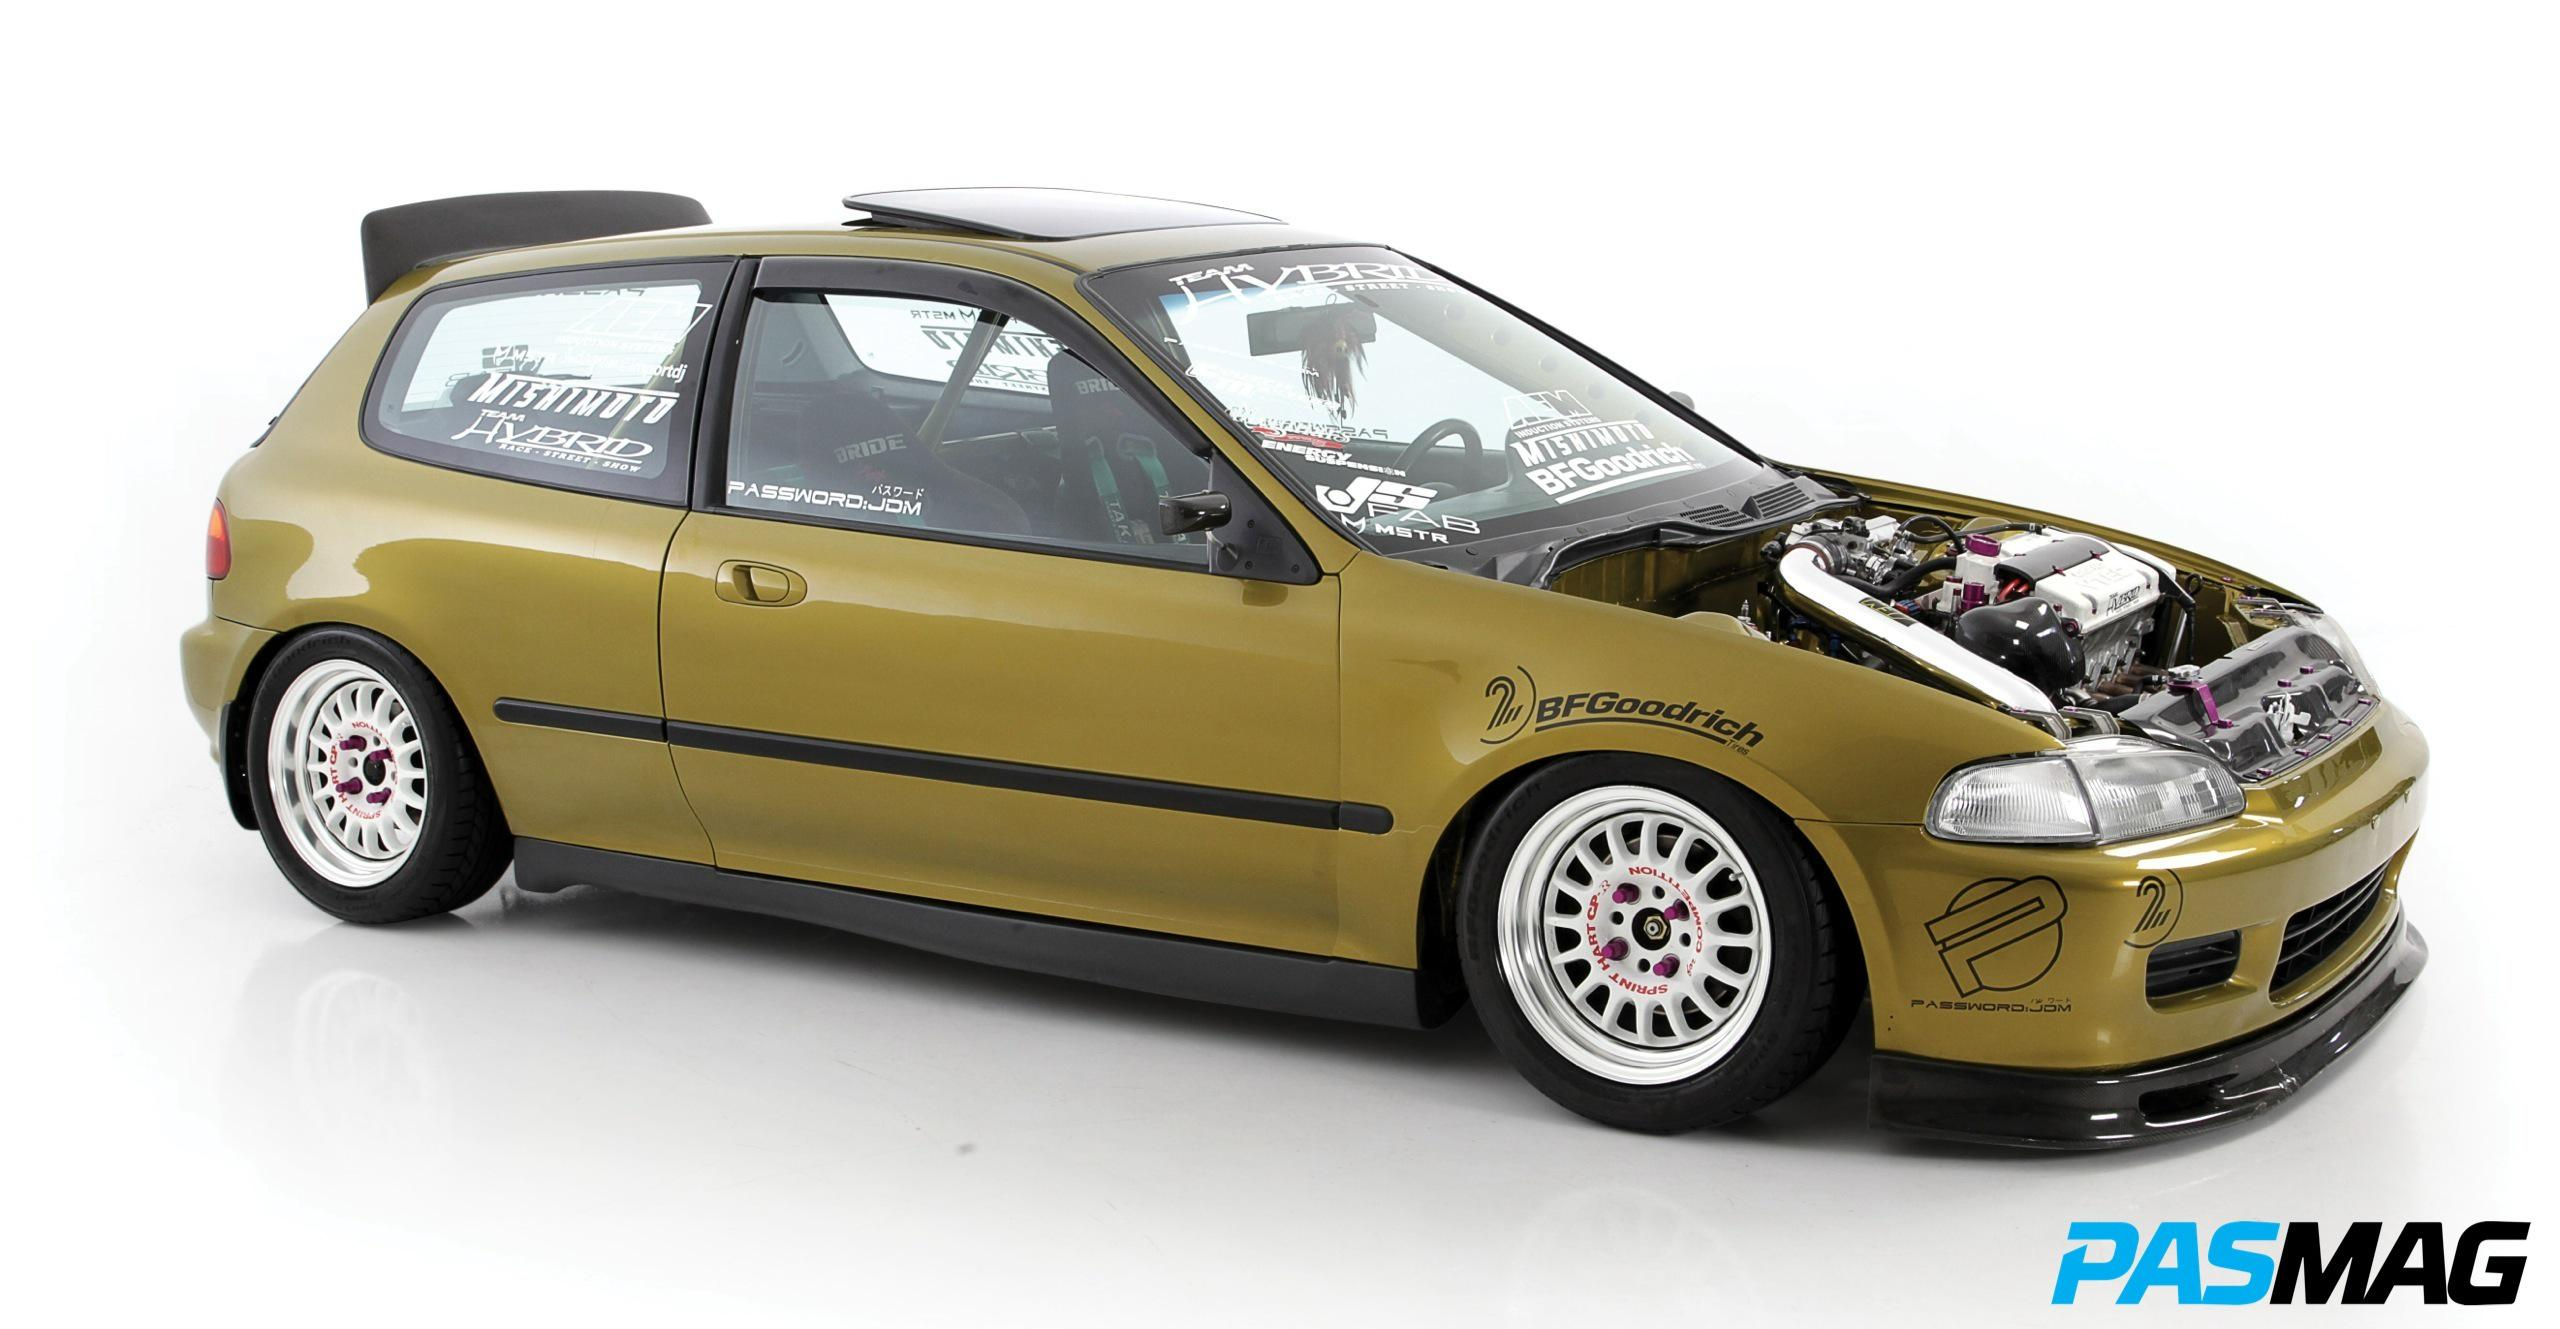 Pasmag Performance Auto And Sound The Golden Rule Brian 1992 Honda Civic Spindle Camachos Si